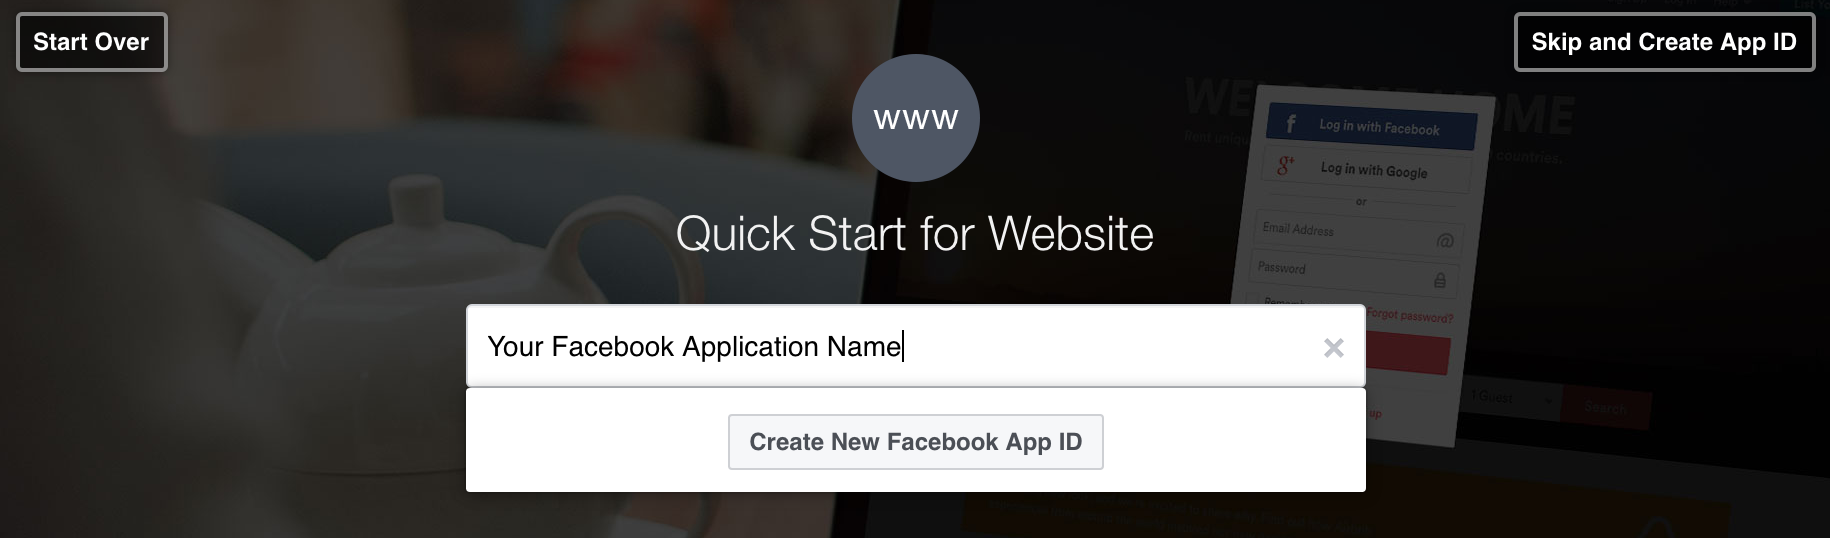 create an application name